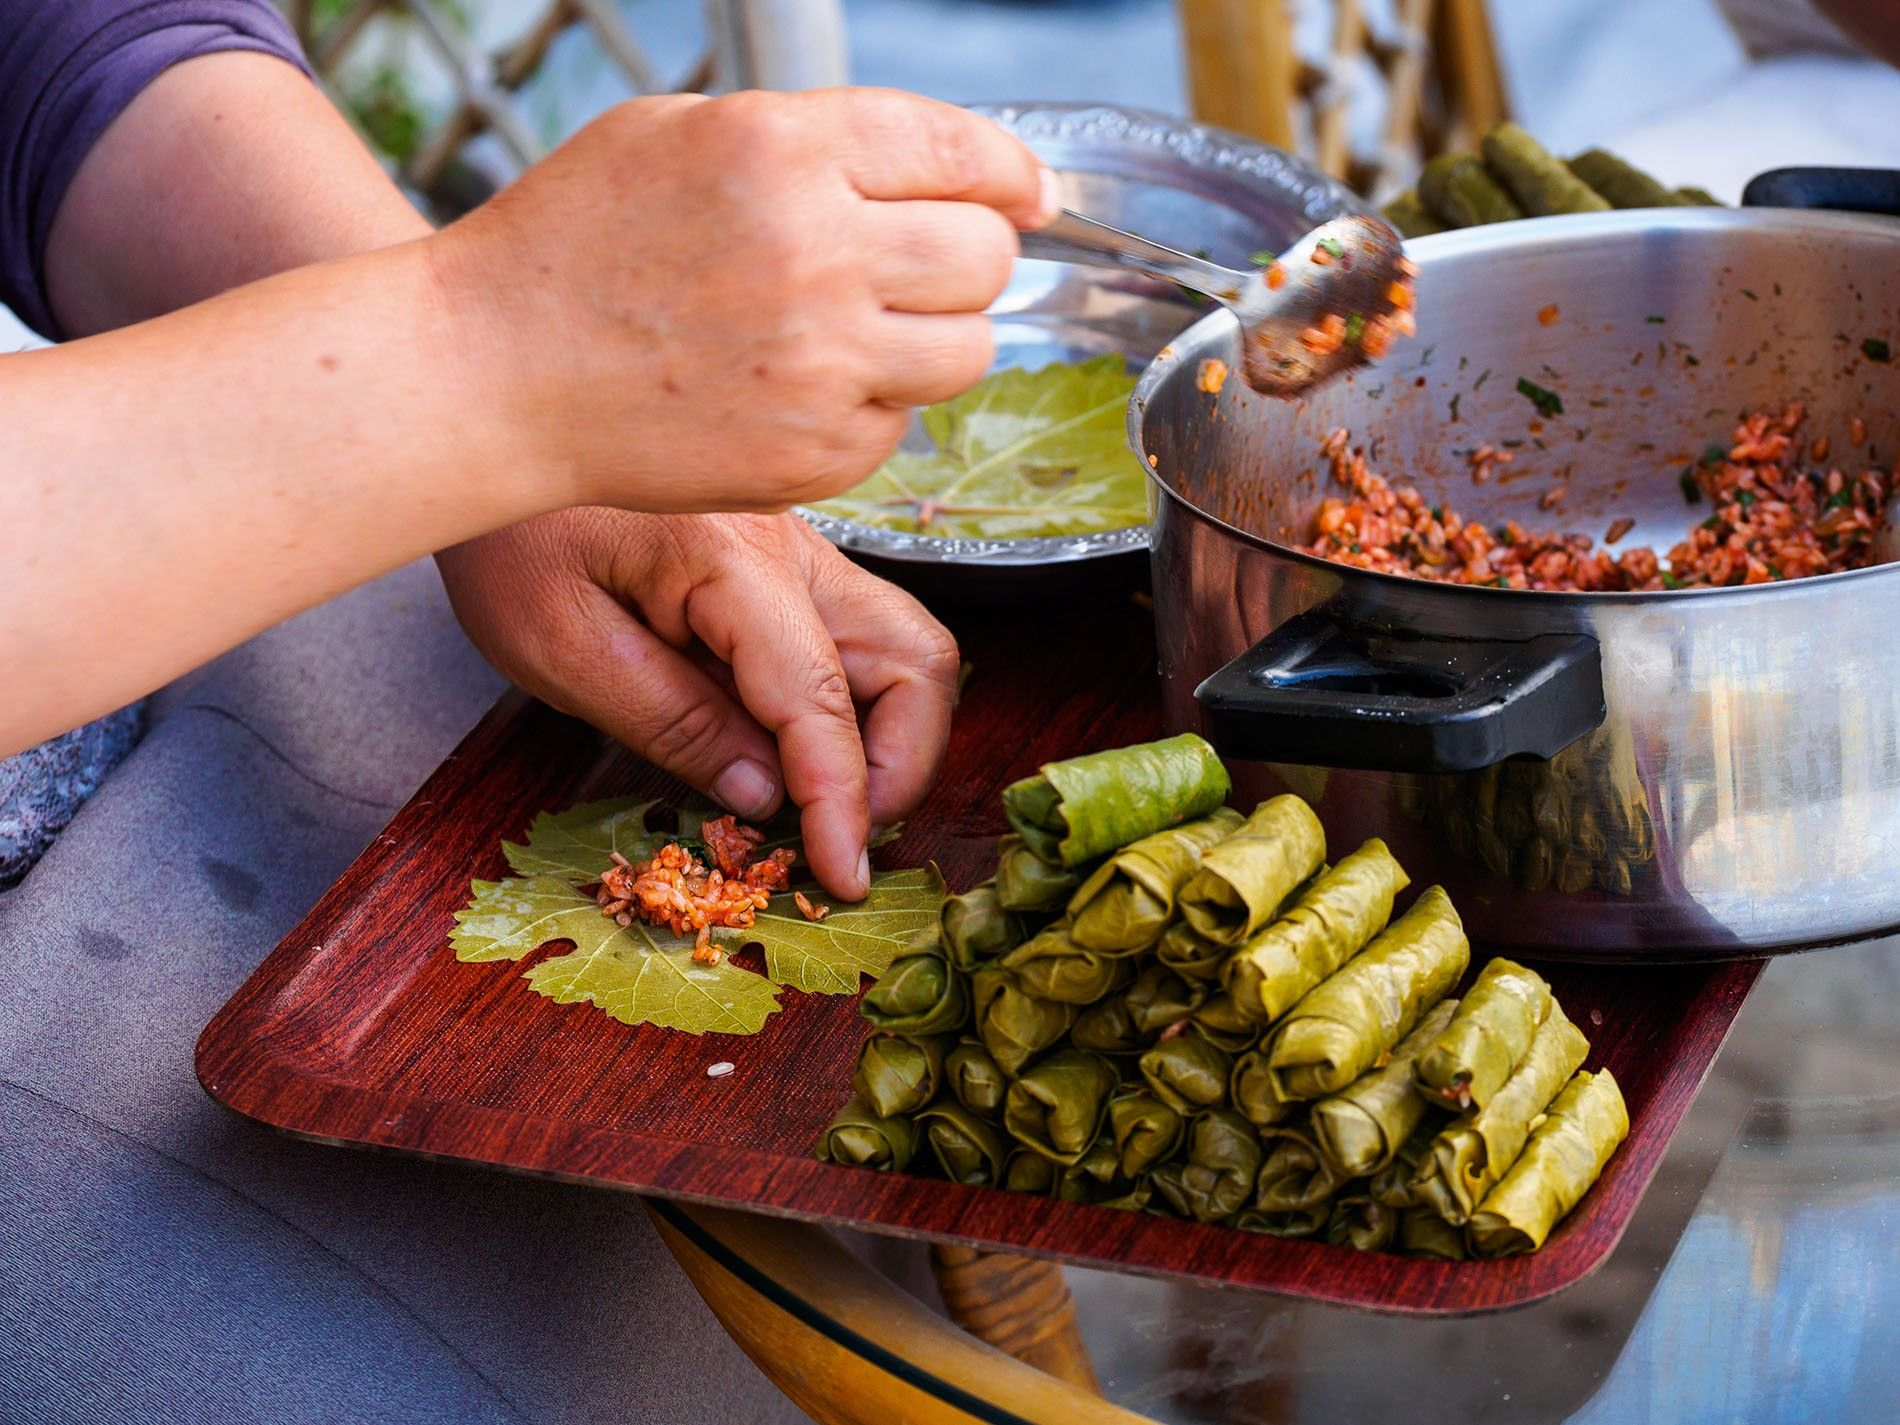 Dolma (stuffed vine leaves) is a staple dish across Turkey, Greece and the Middle East.